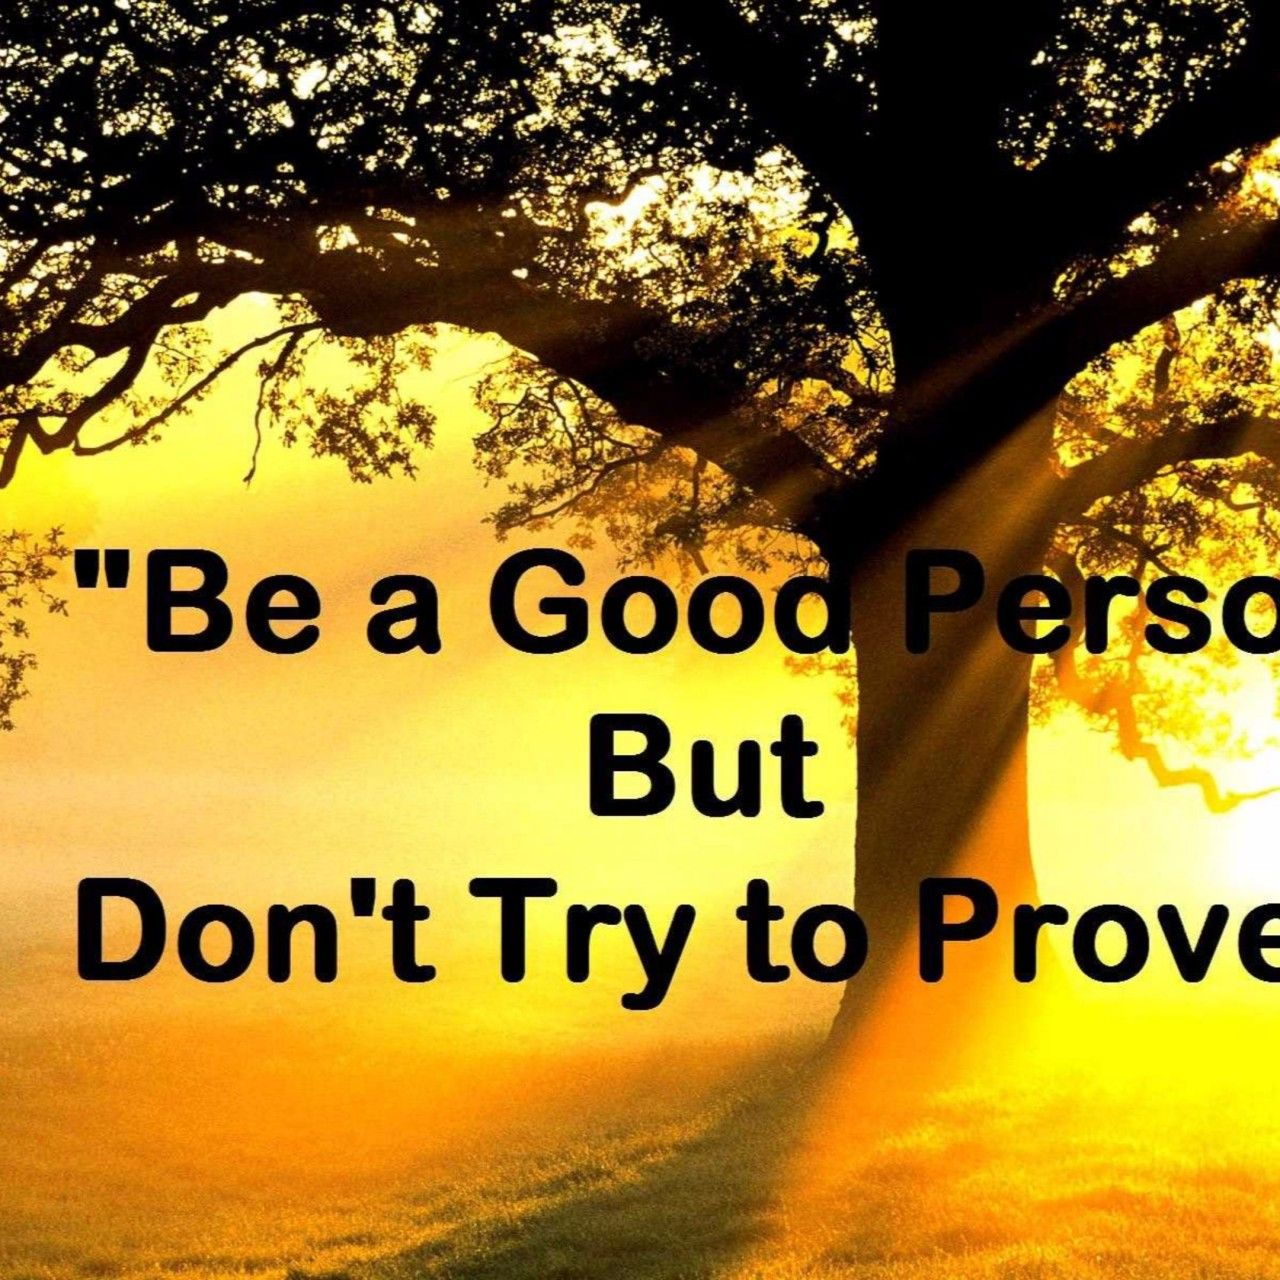 Good Person Motivational Quote 4K Wallpaper Free 4K